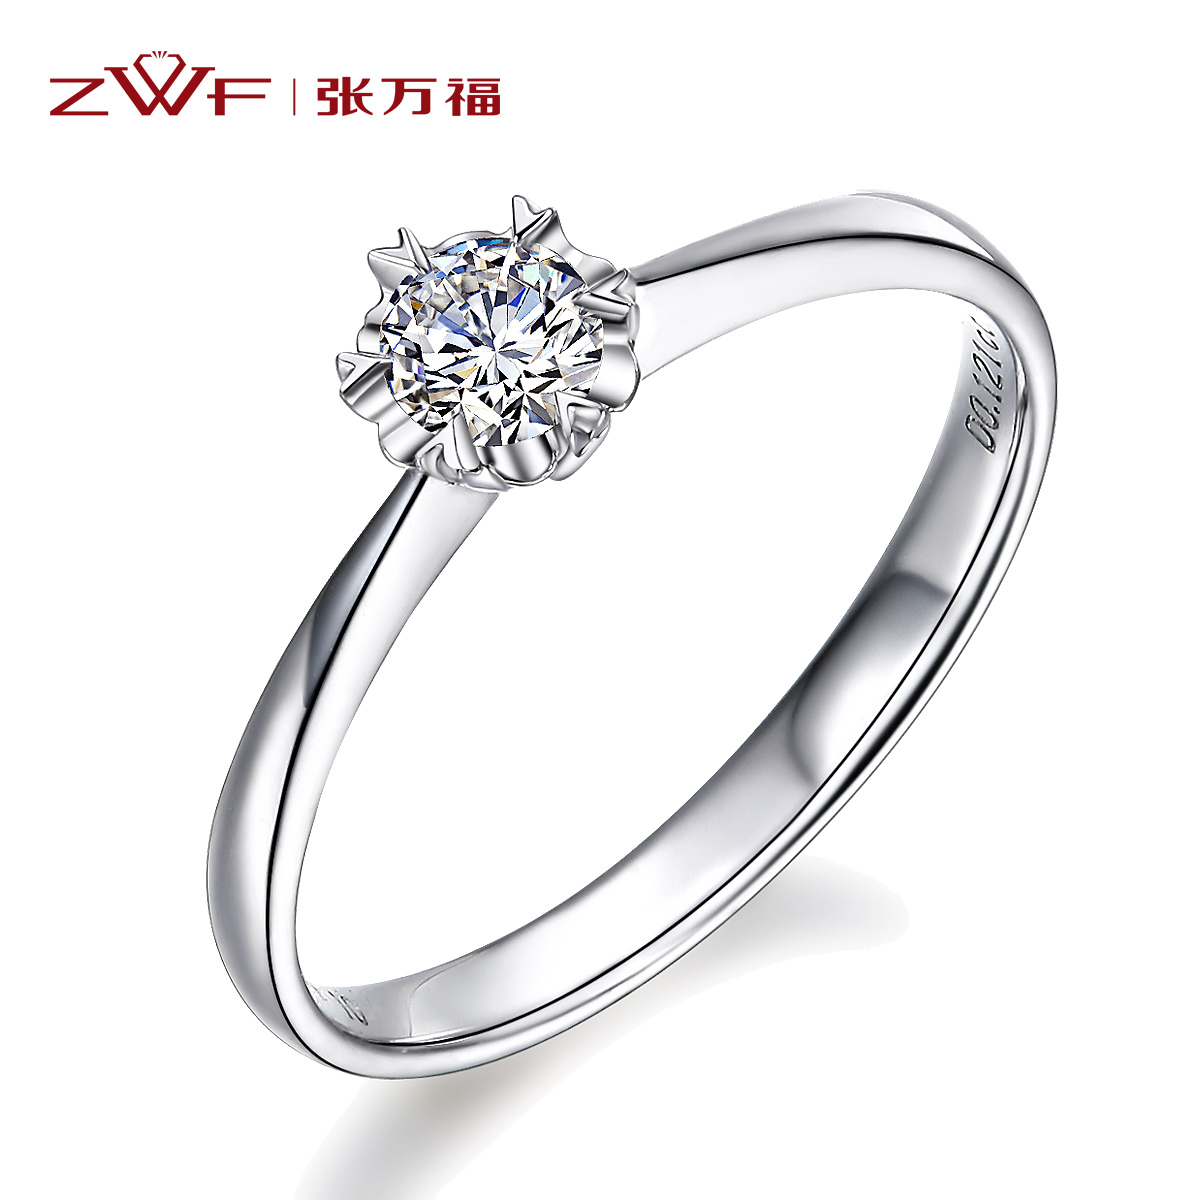 Zhang wanfu six-claw classic snowflake atmospheric female ring cruciatus 18K white gold diamond ring-shape wedding ring flower